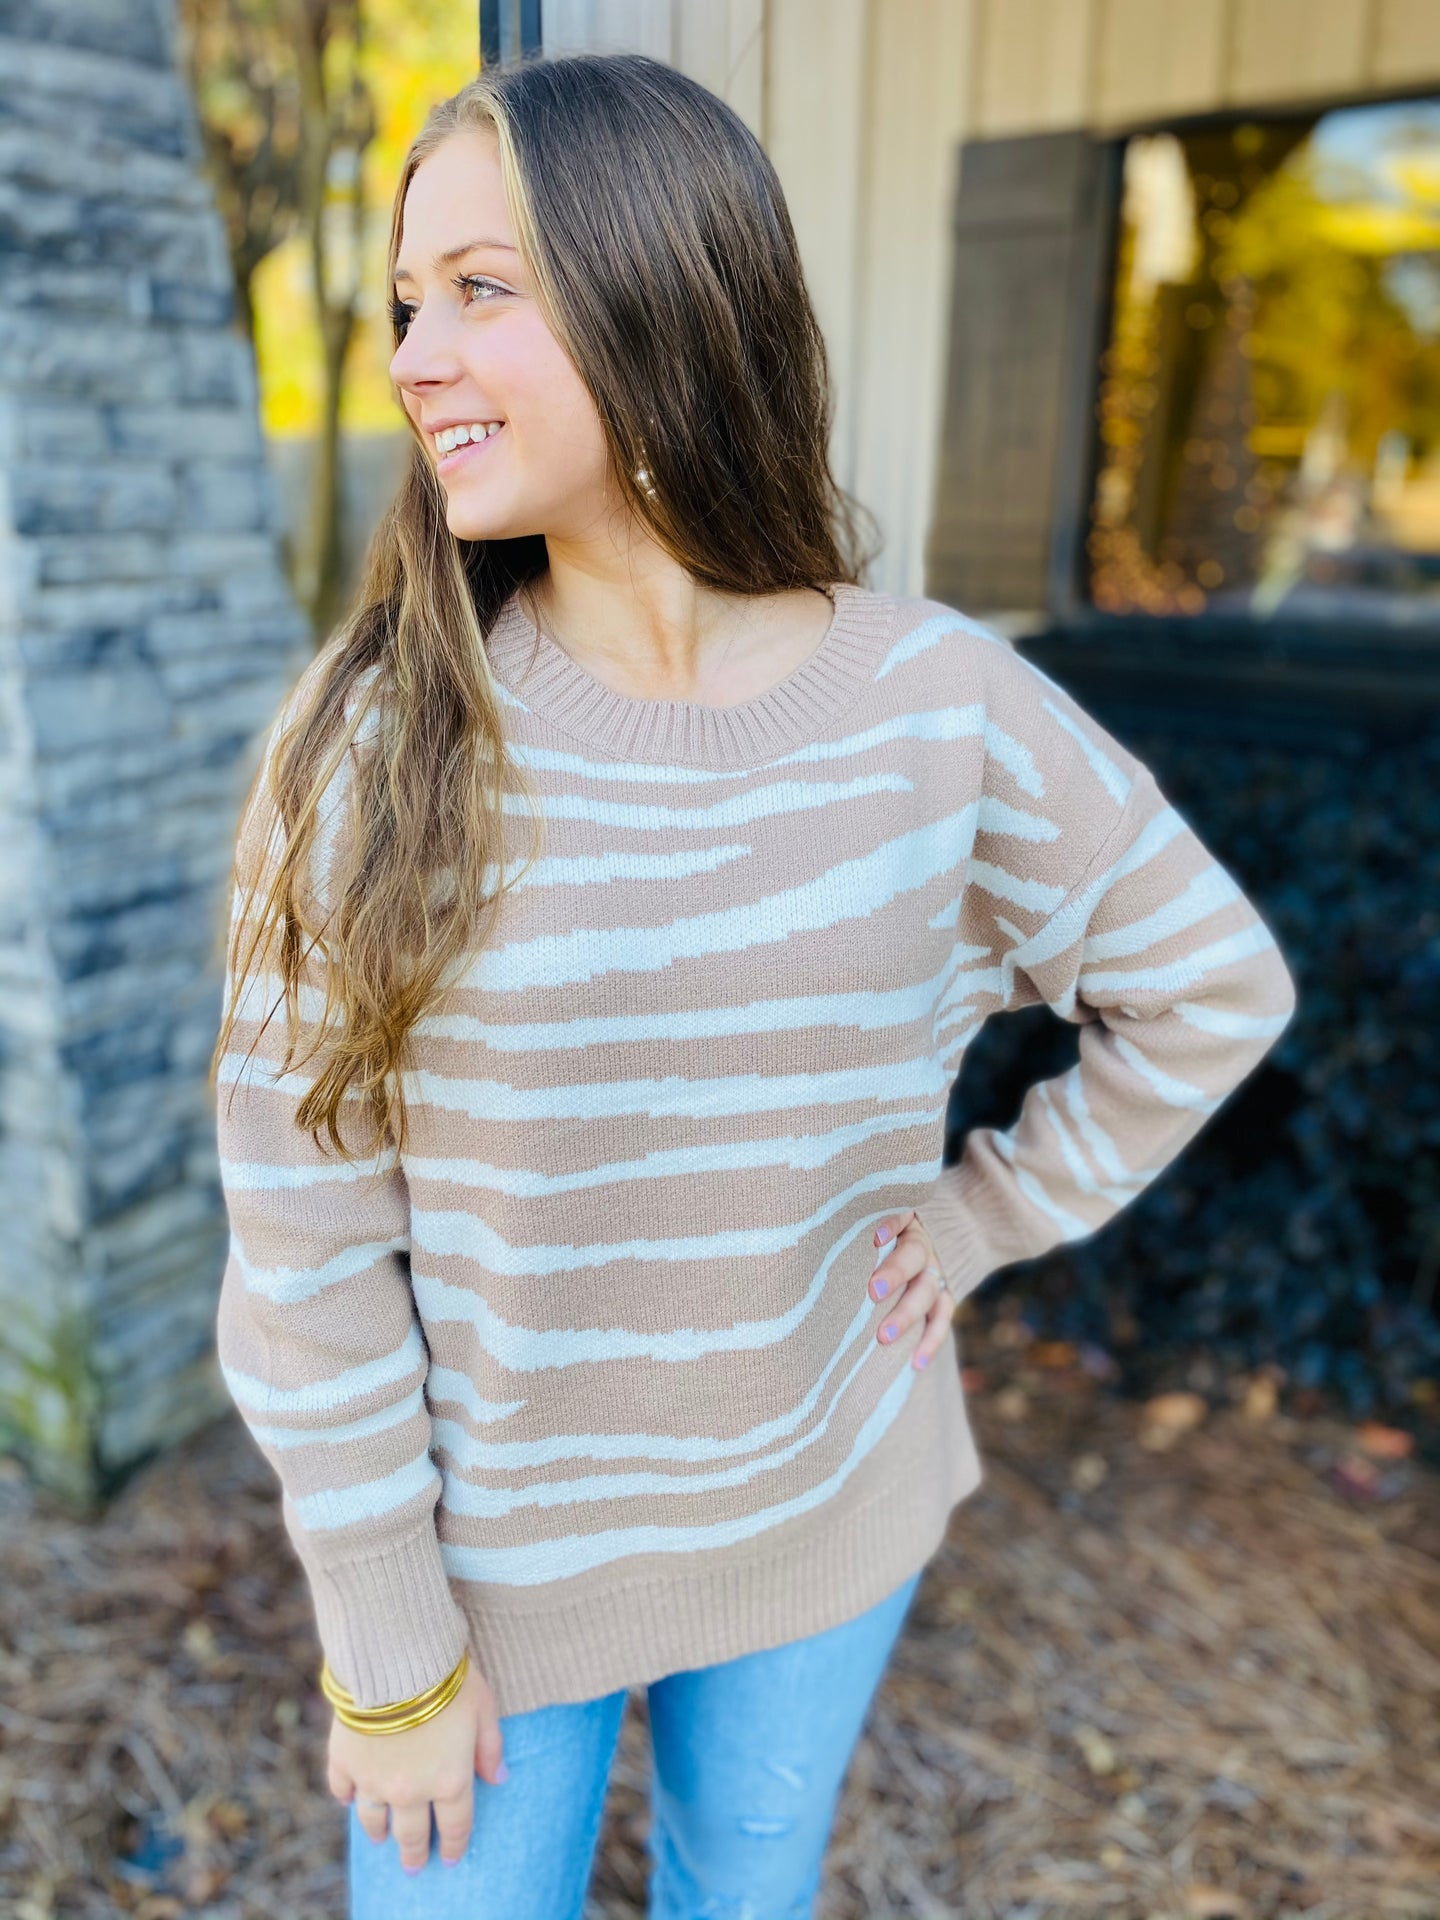 The Freya Zebra Sweater